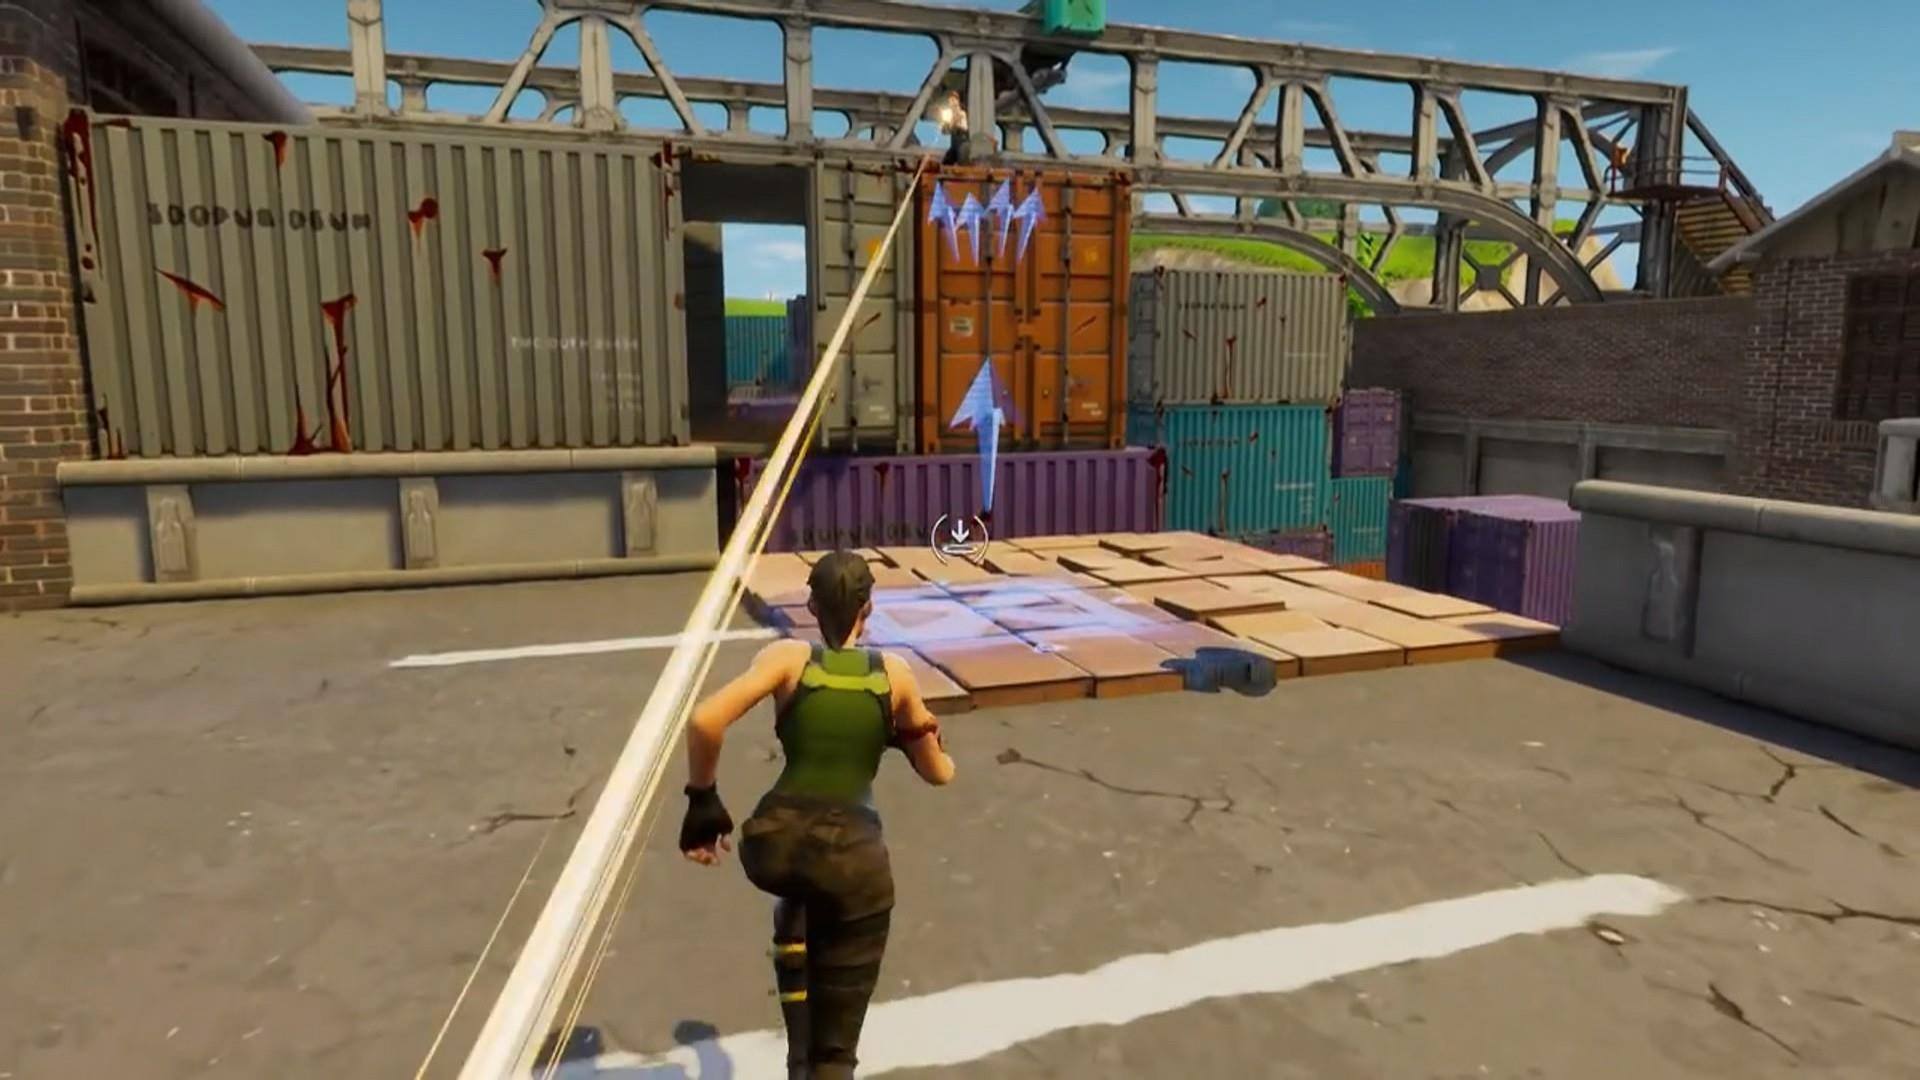 Video game 'Fortnite' is raking in millions and taking over the real